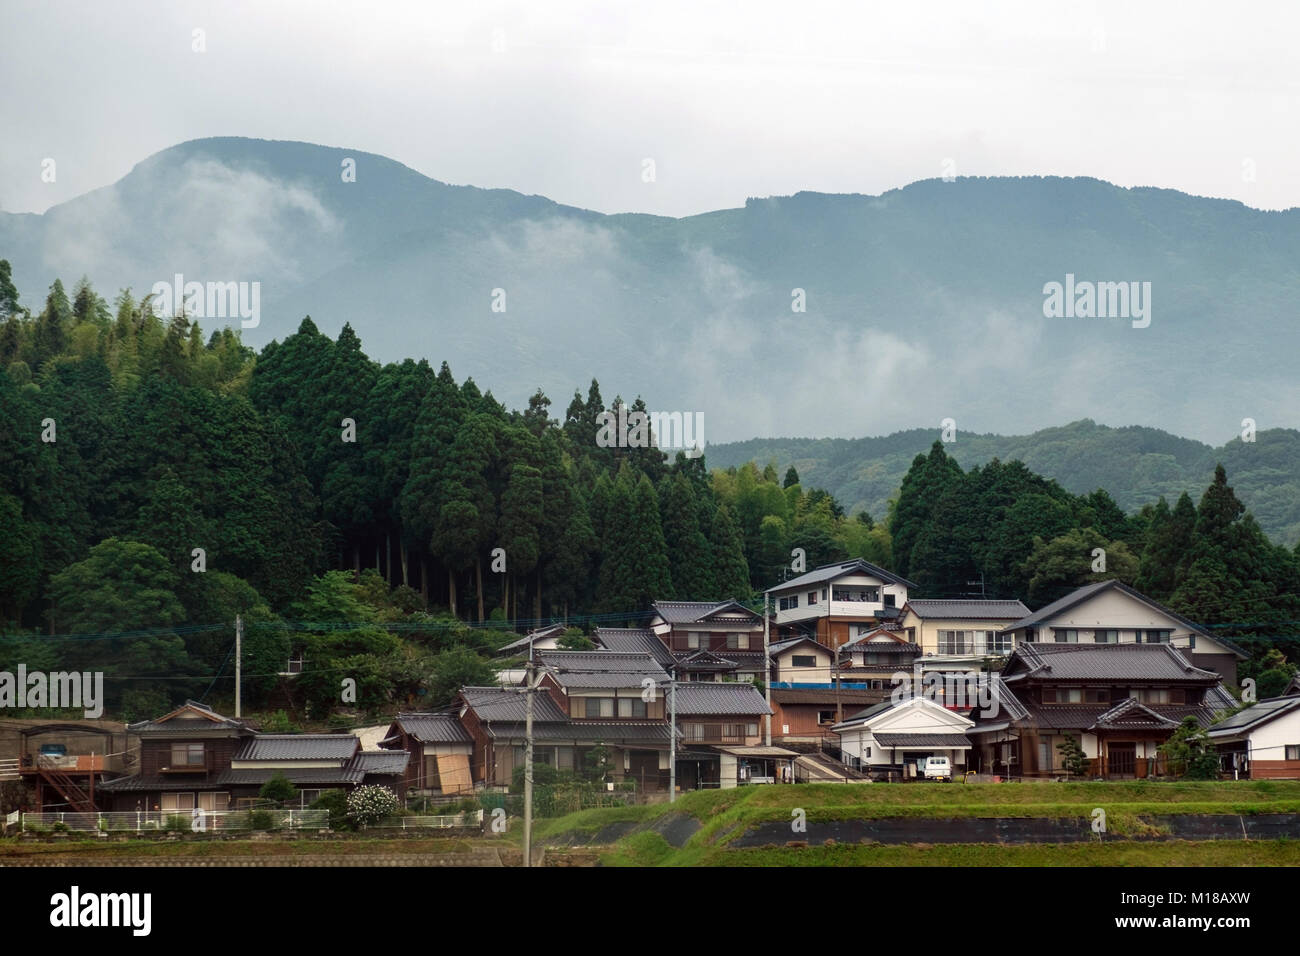 View of houses crowded together in rural Japan with misty mountains and tress in the background and rice fields - Stock Image